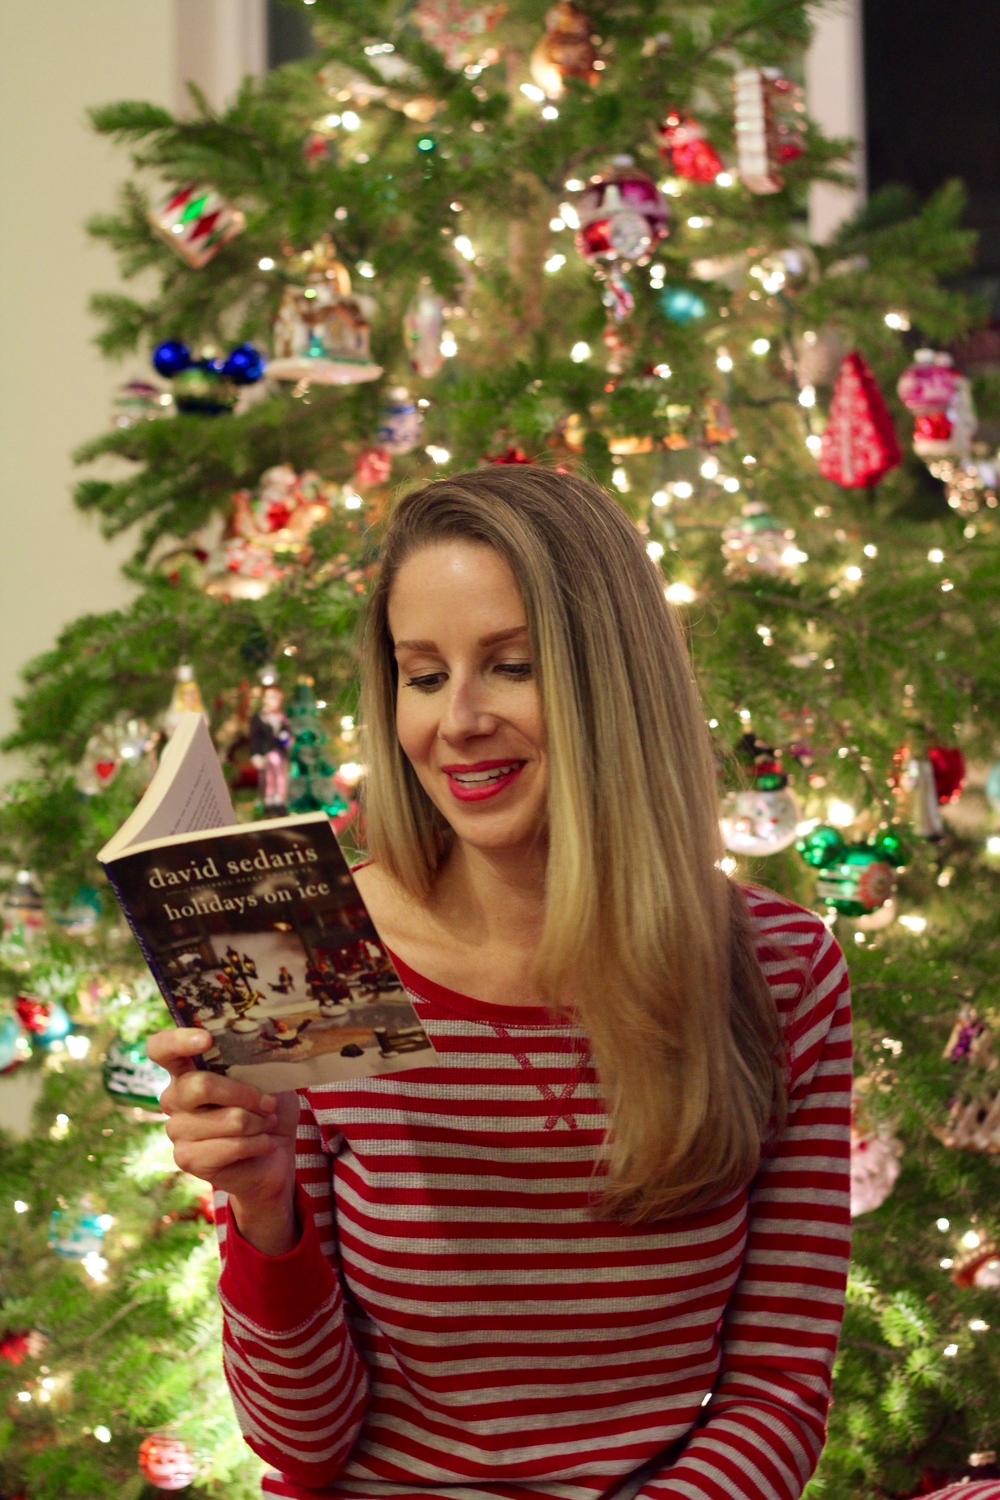 gilt edge | from the books :: holidays on ice